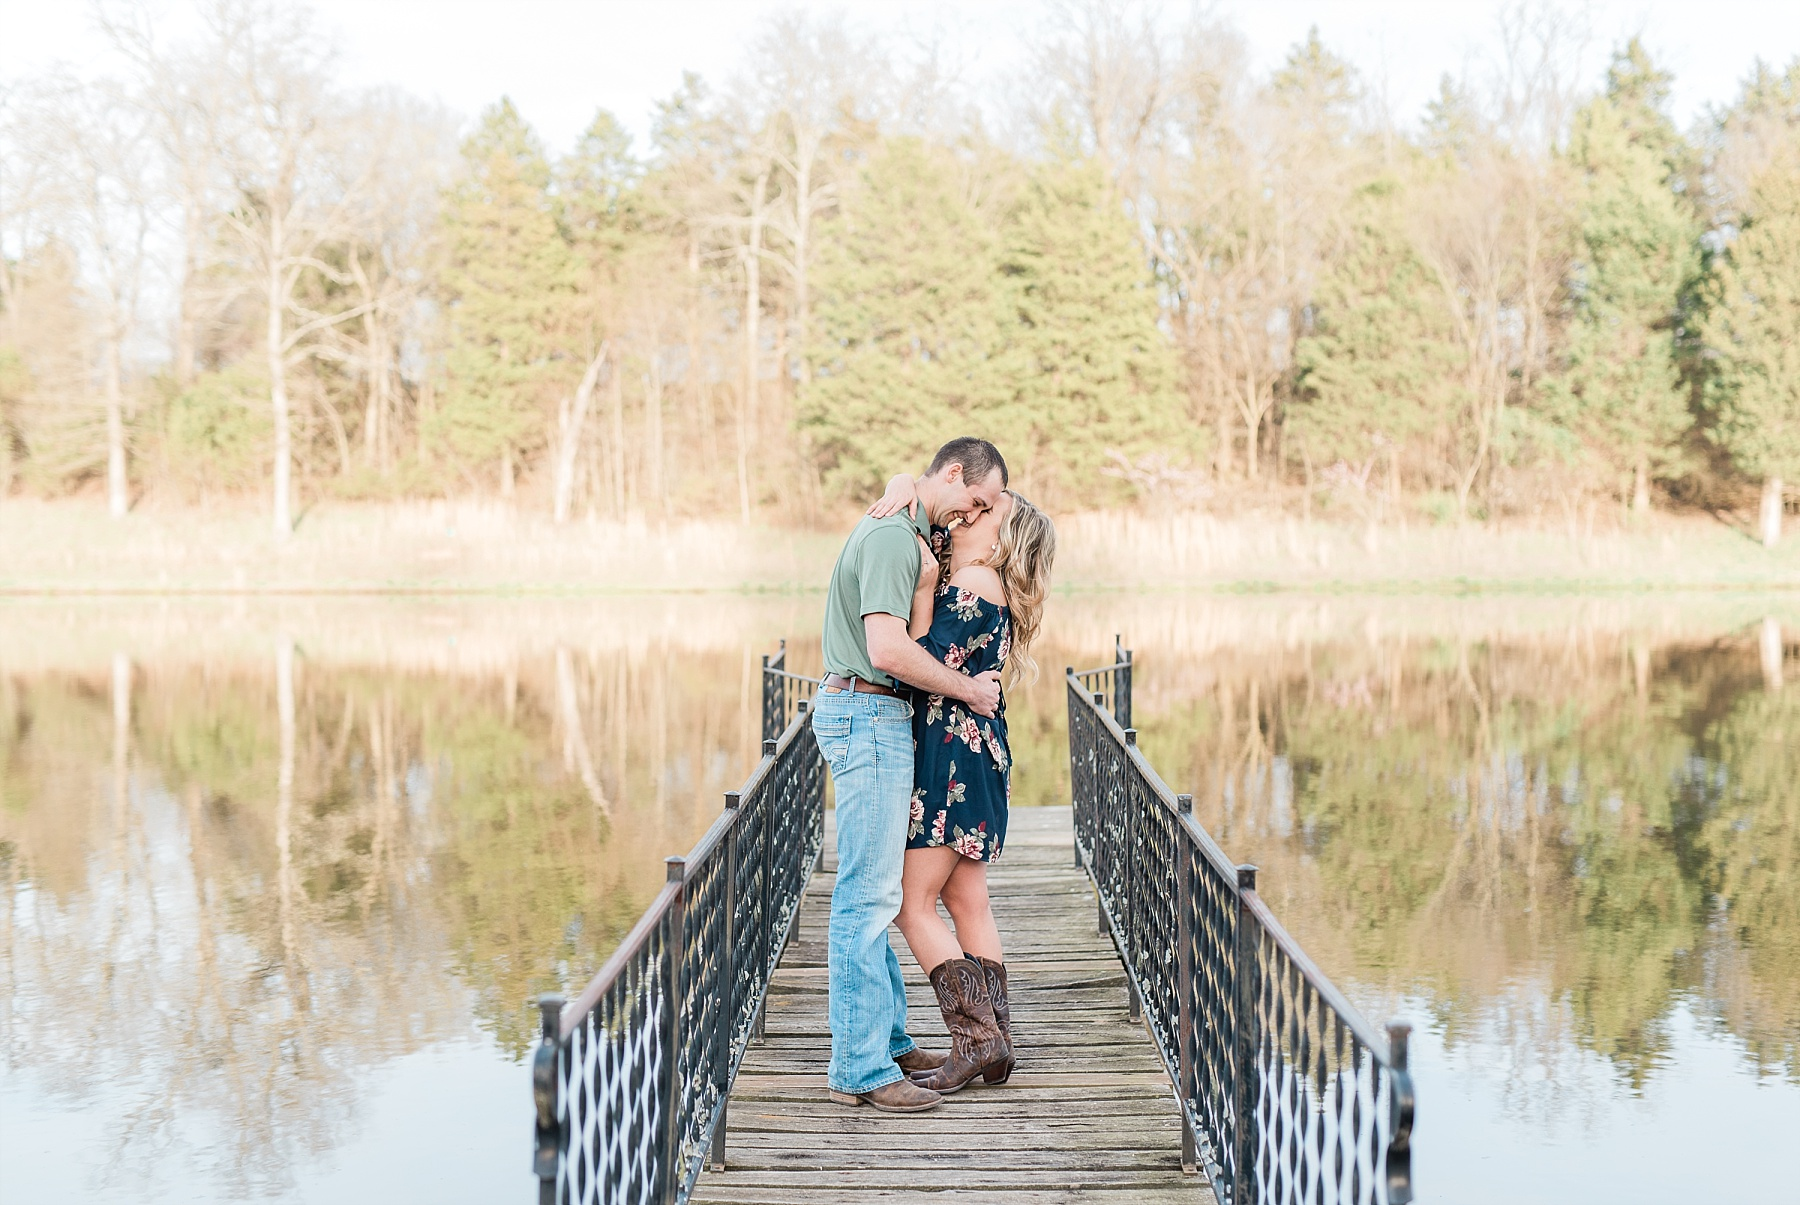 Spring Sunset Farm Engagement Session on Family Farm in Missouri Midwest by Kelsi Kliethermes Photography_0003.jpg